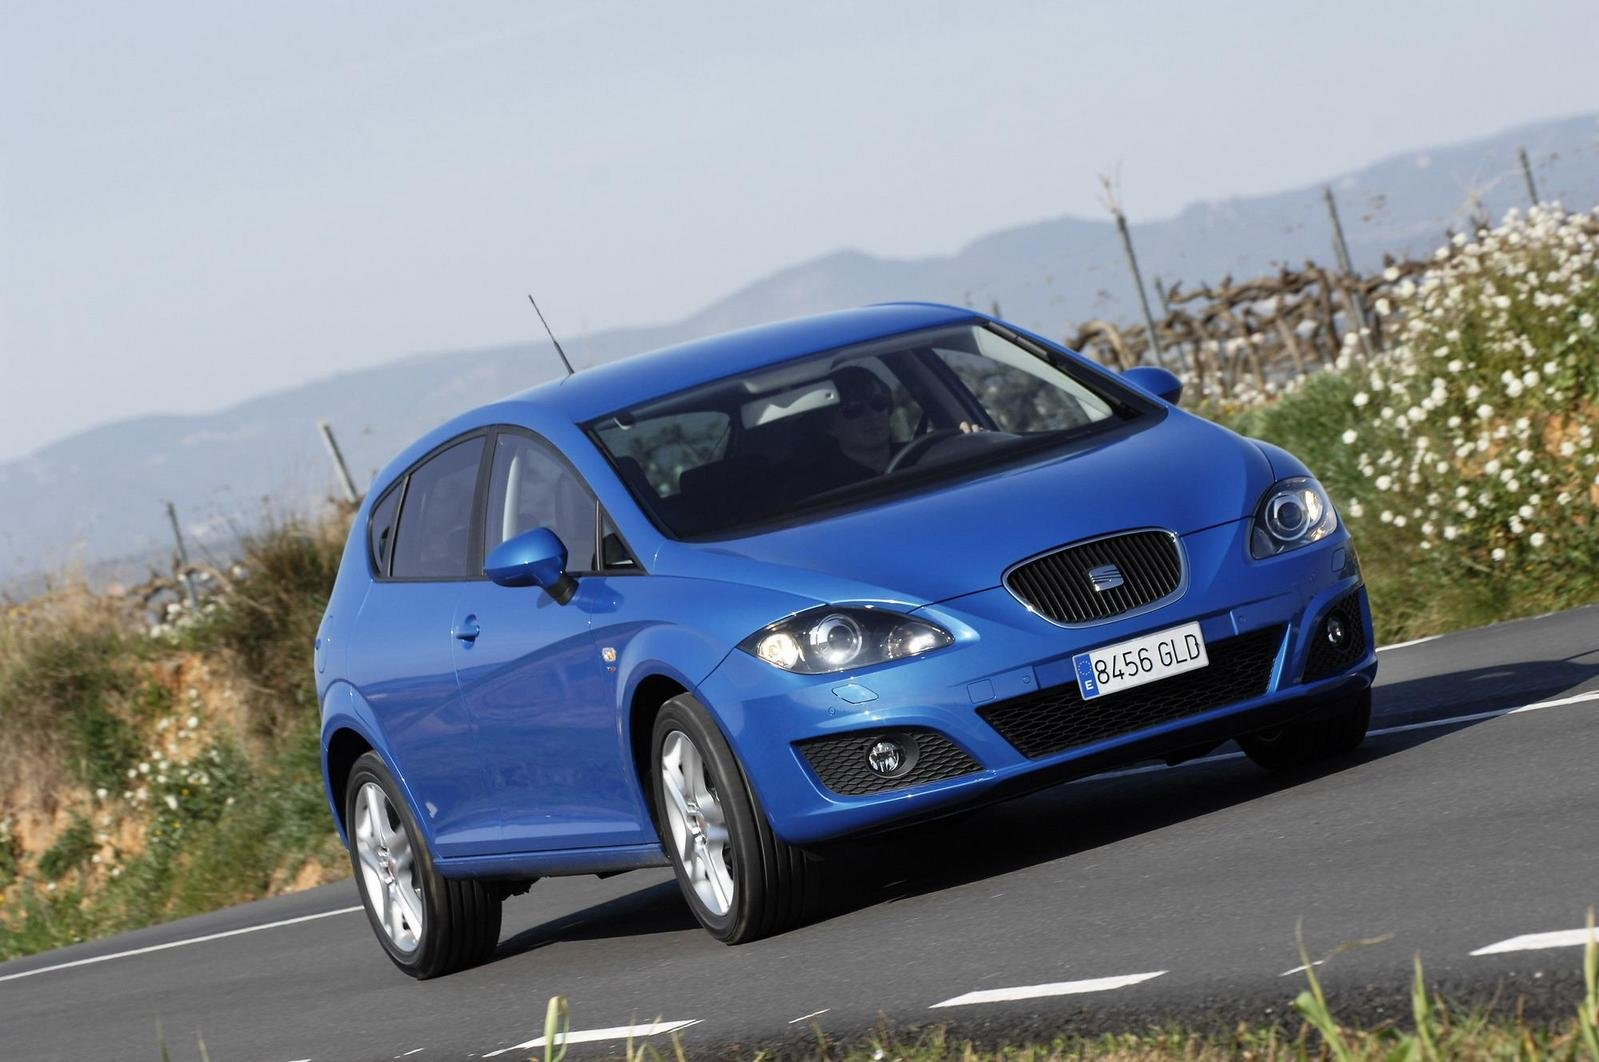 2009 seat leon picture 292748 car review top speed. Black Bedroom Furniture Sets. Home Design Ideas